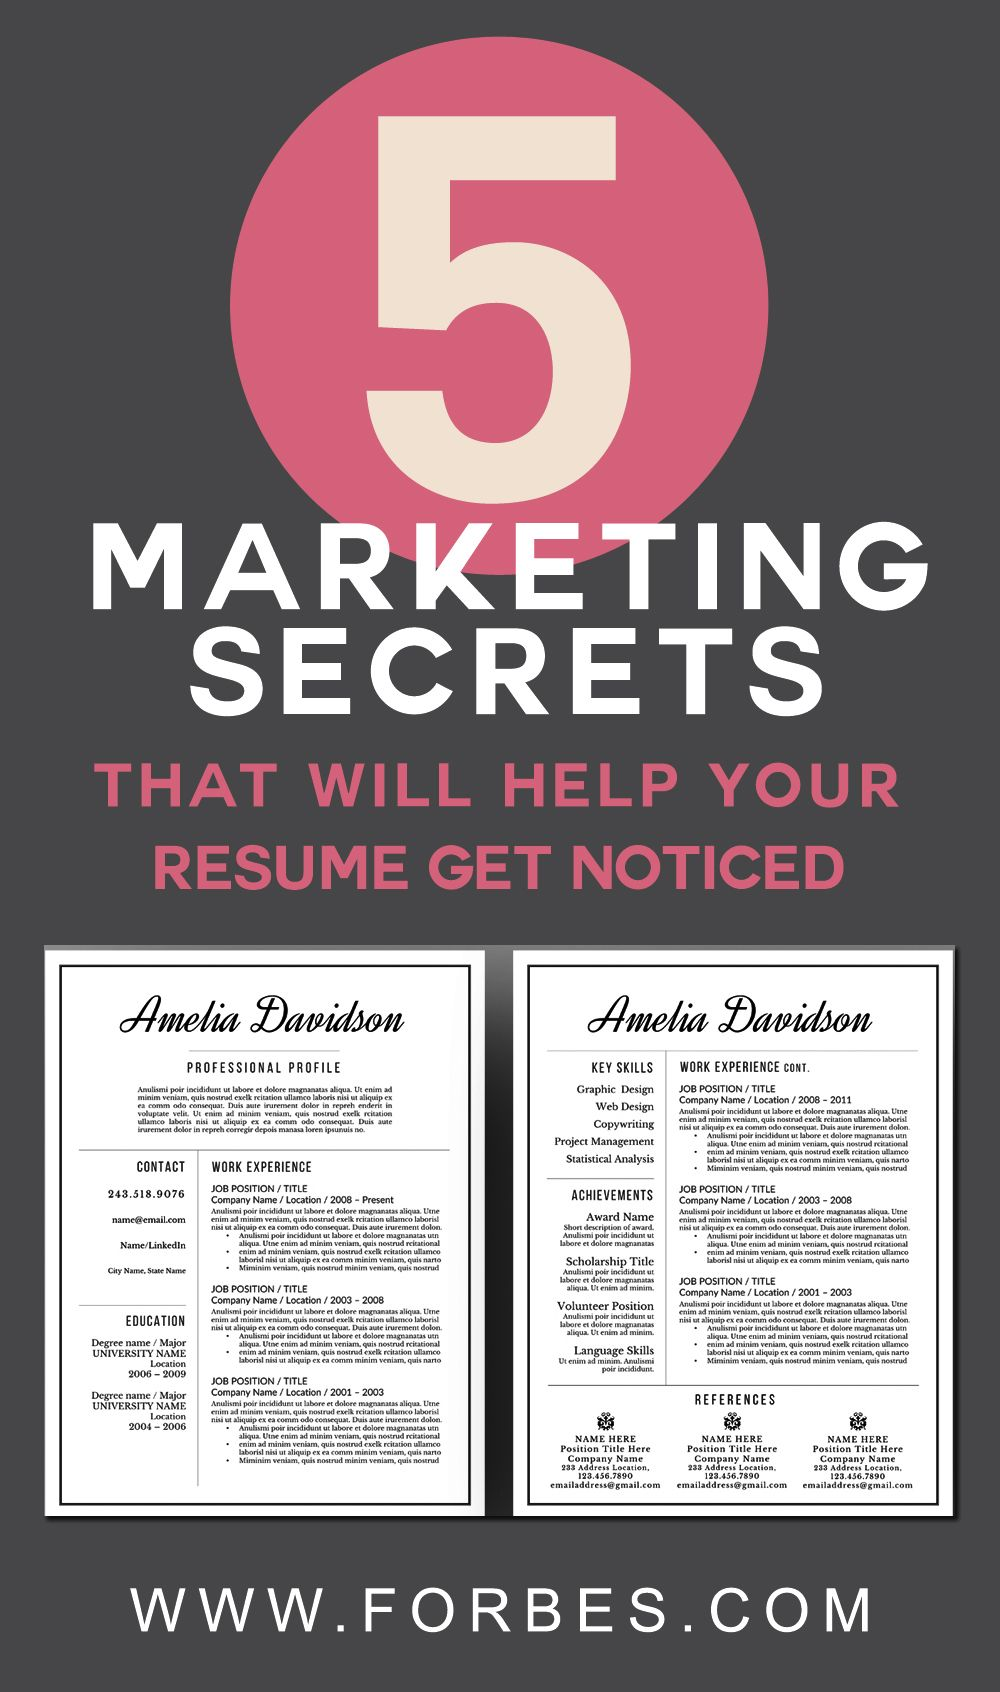 Marketing Secrets That Will Help Your Resume Get Noticed